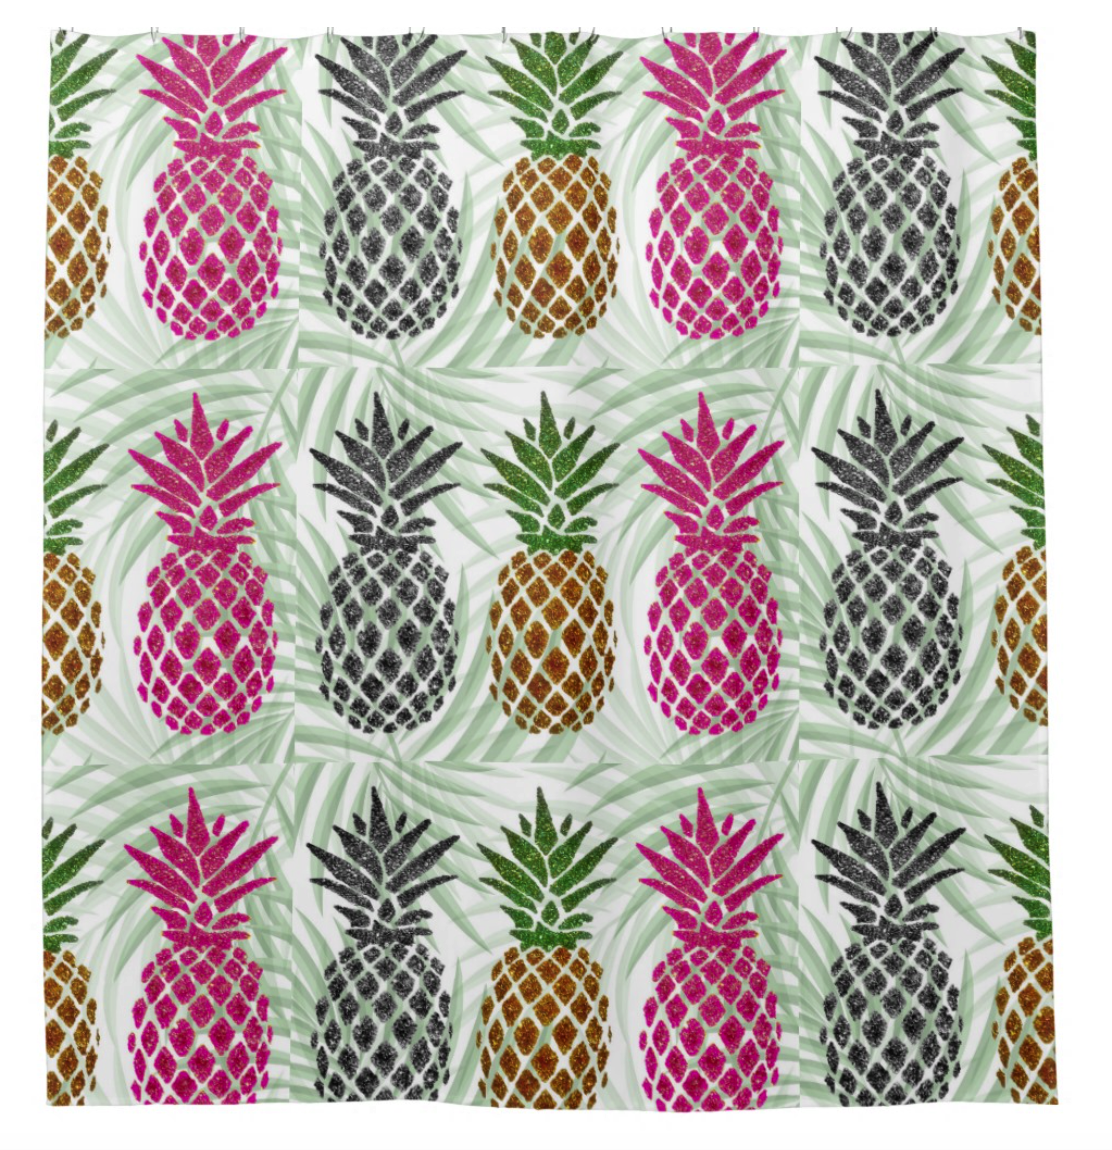 Shower Curtain - Pineapple - CRYSTAHHLED